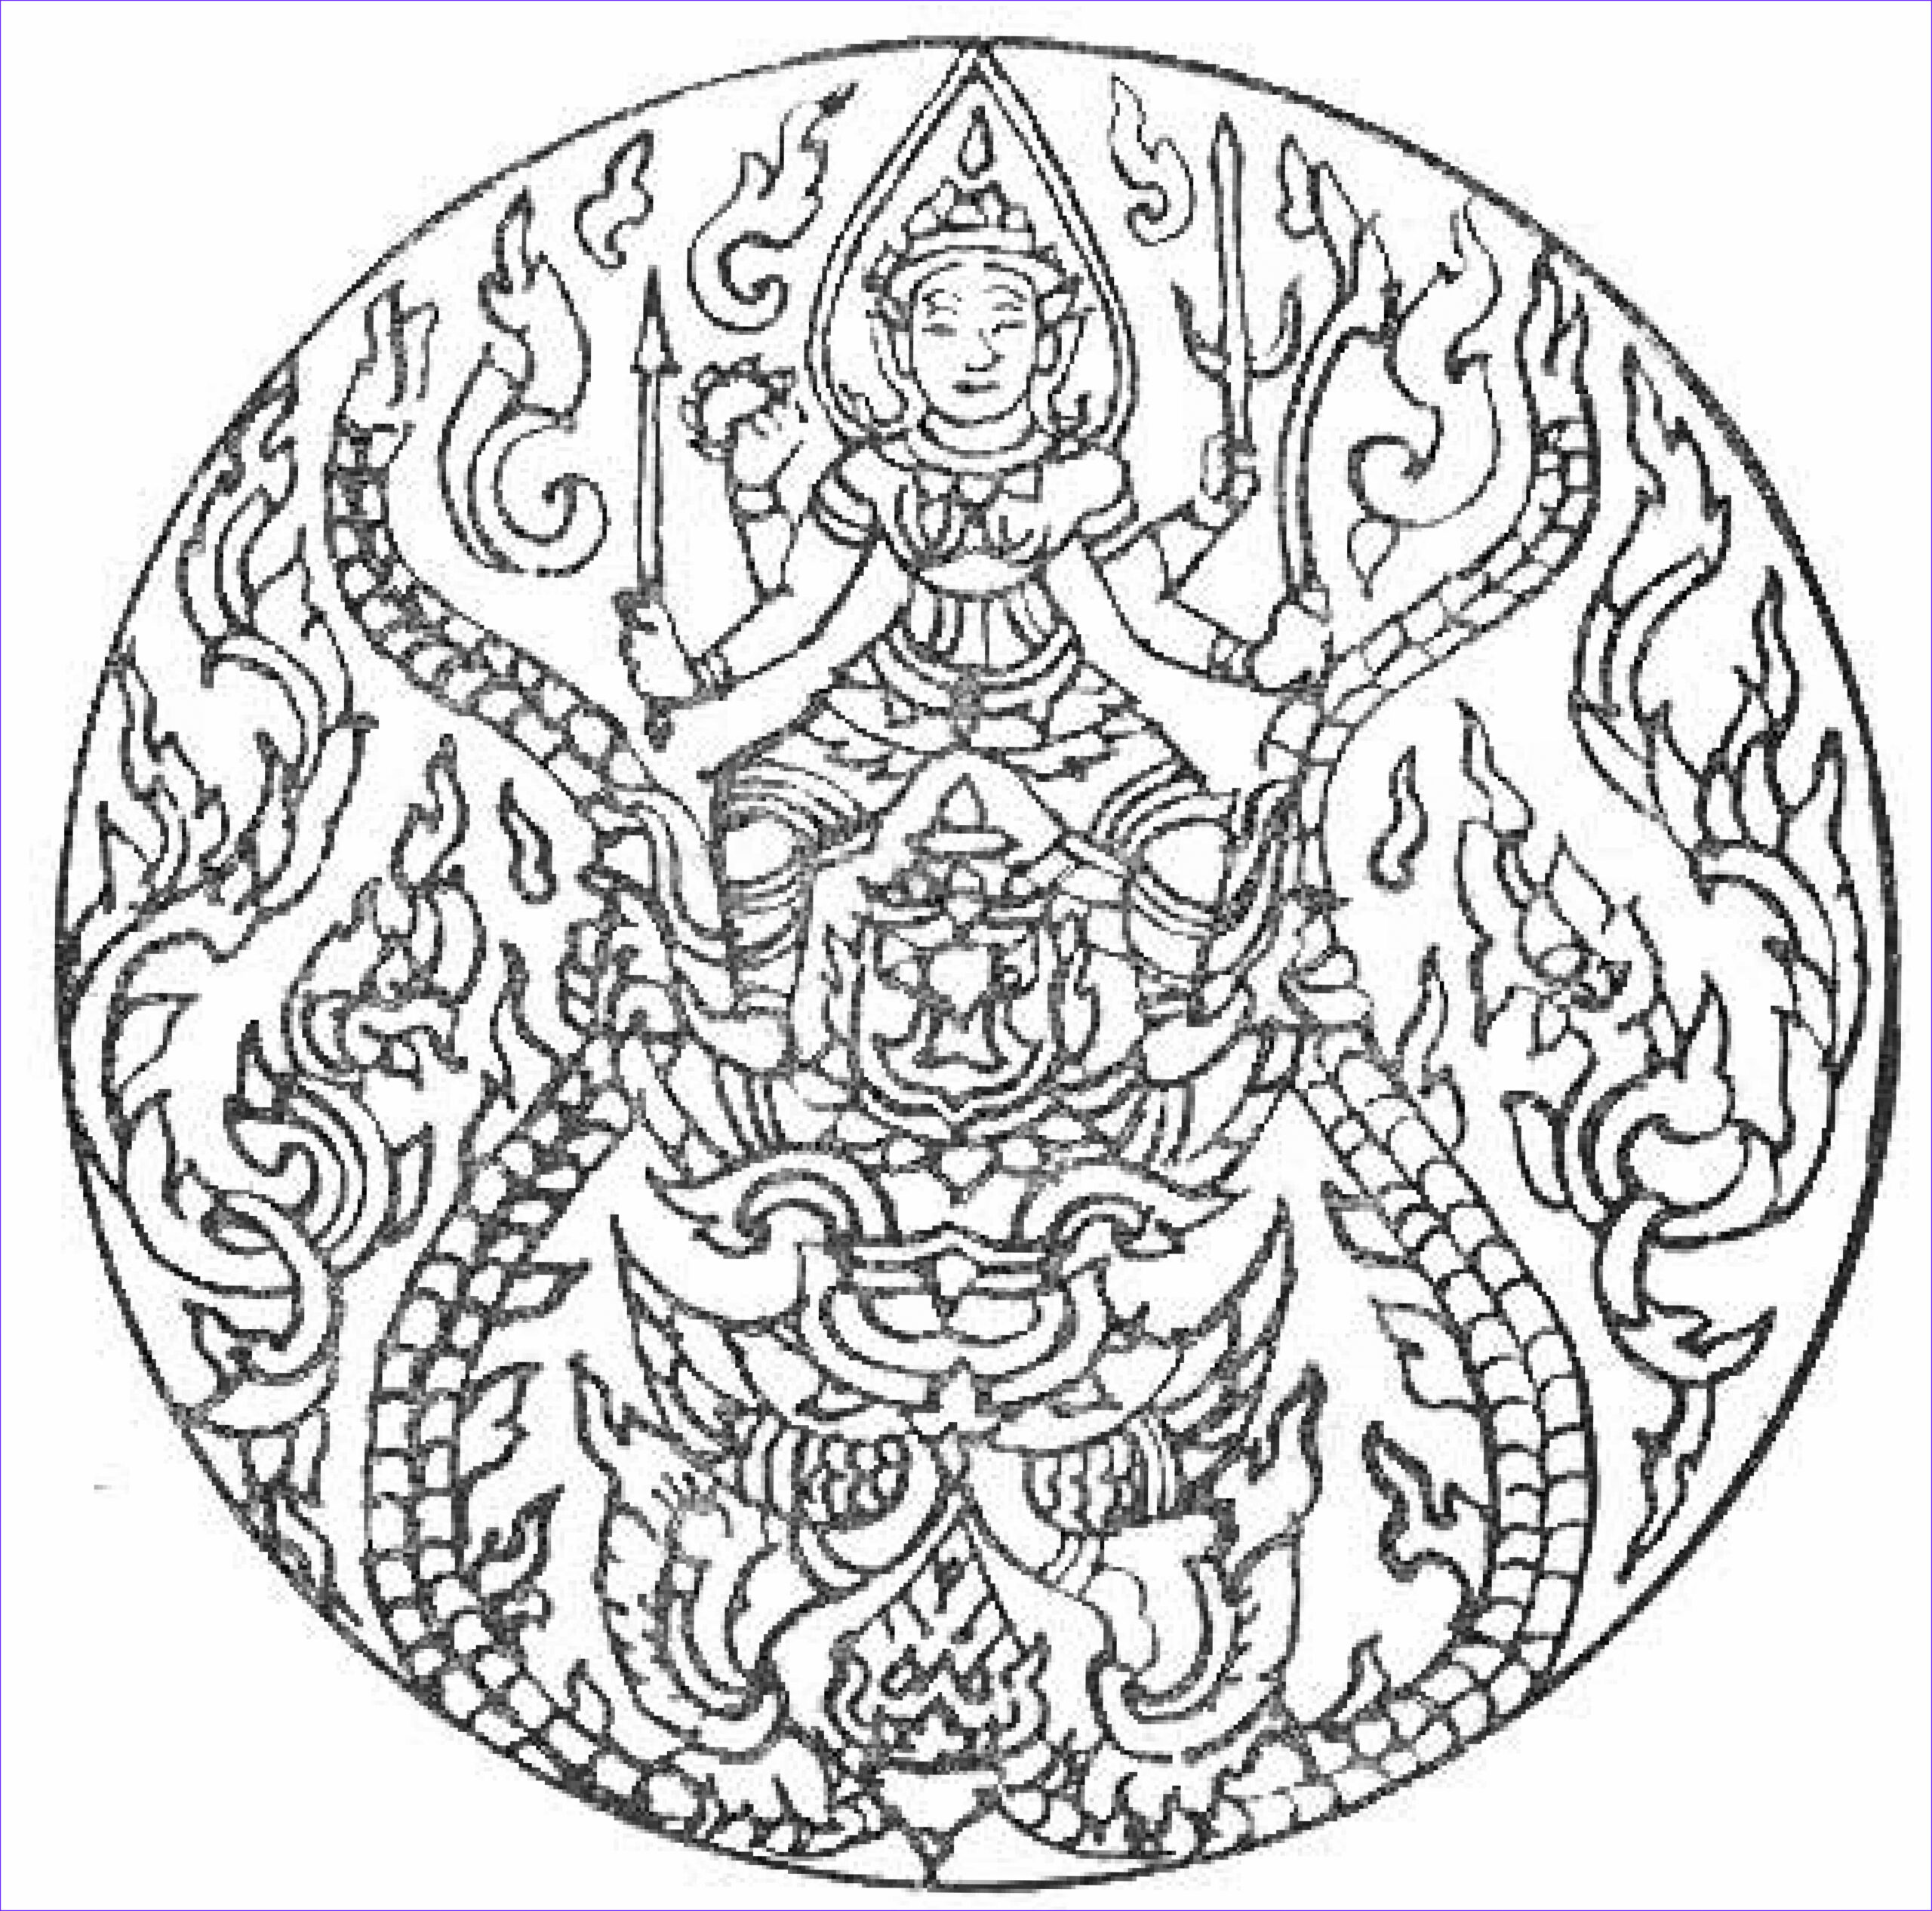 Mandala Adult Coloring Book New Photos Free Printable Mandala Coloring Pages for Adults Best